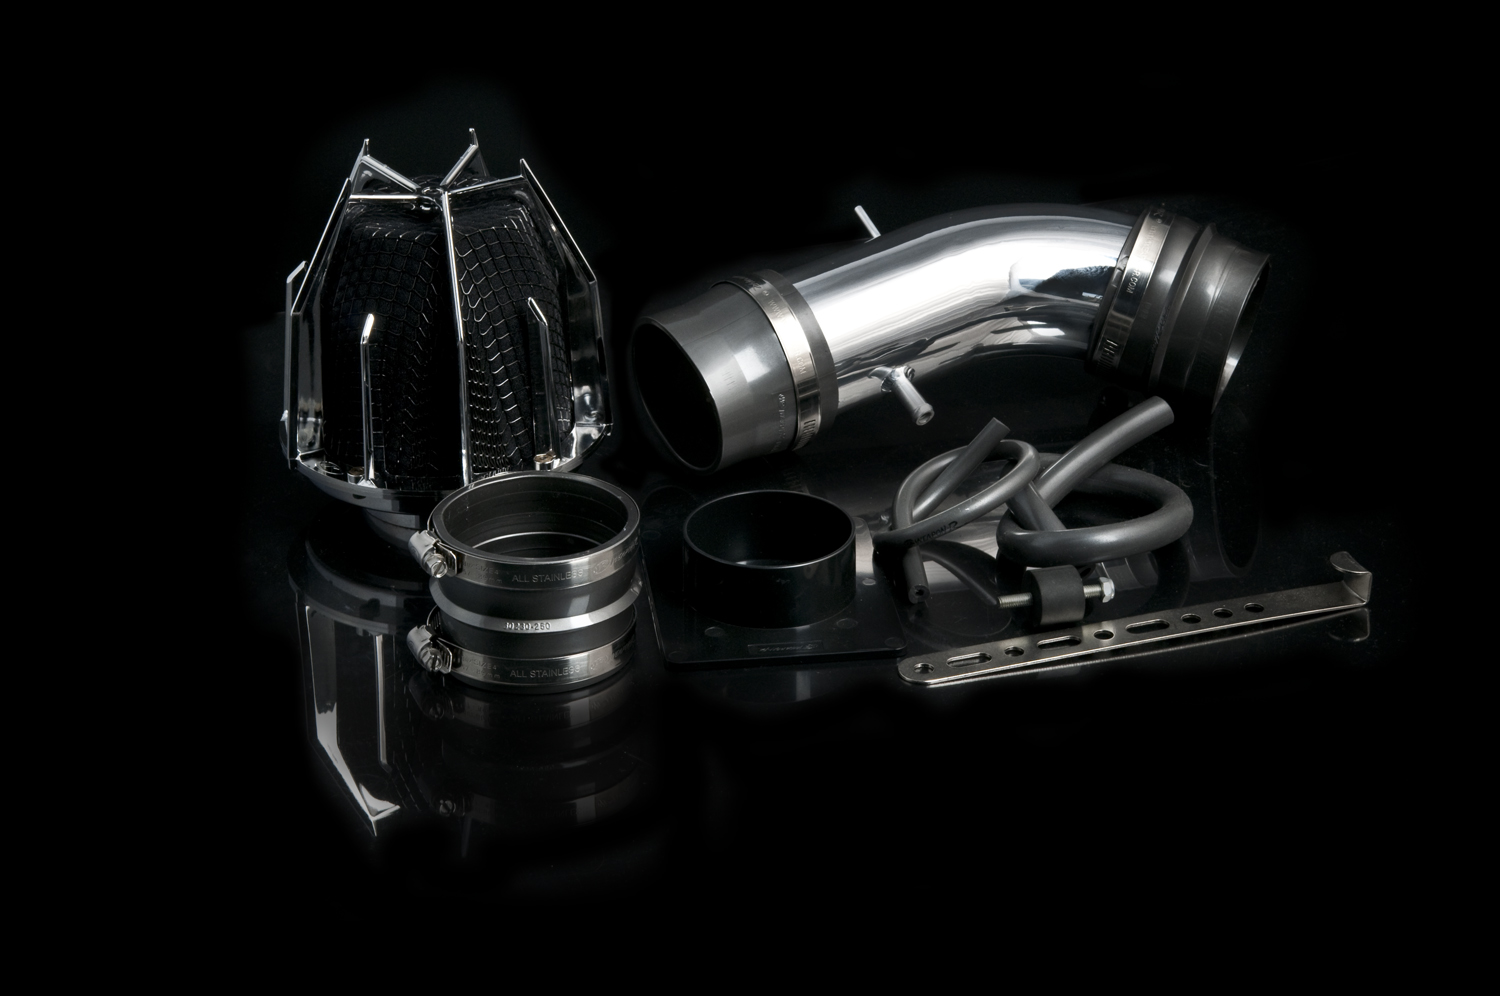 Nissan Sentra V-Spec / Altima 2.5l 2002-2006 Weapon-R Dragon Air Intake